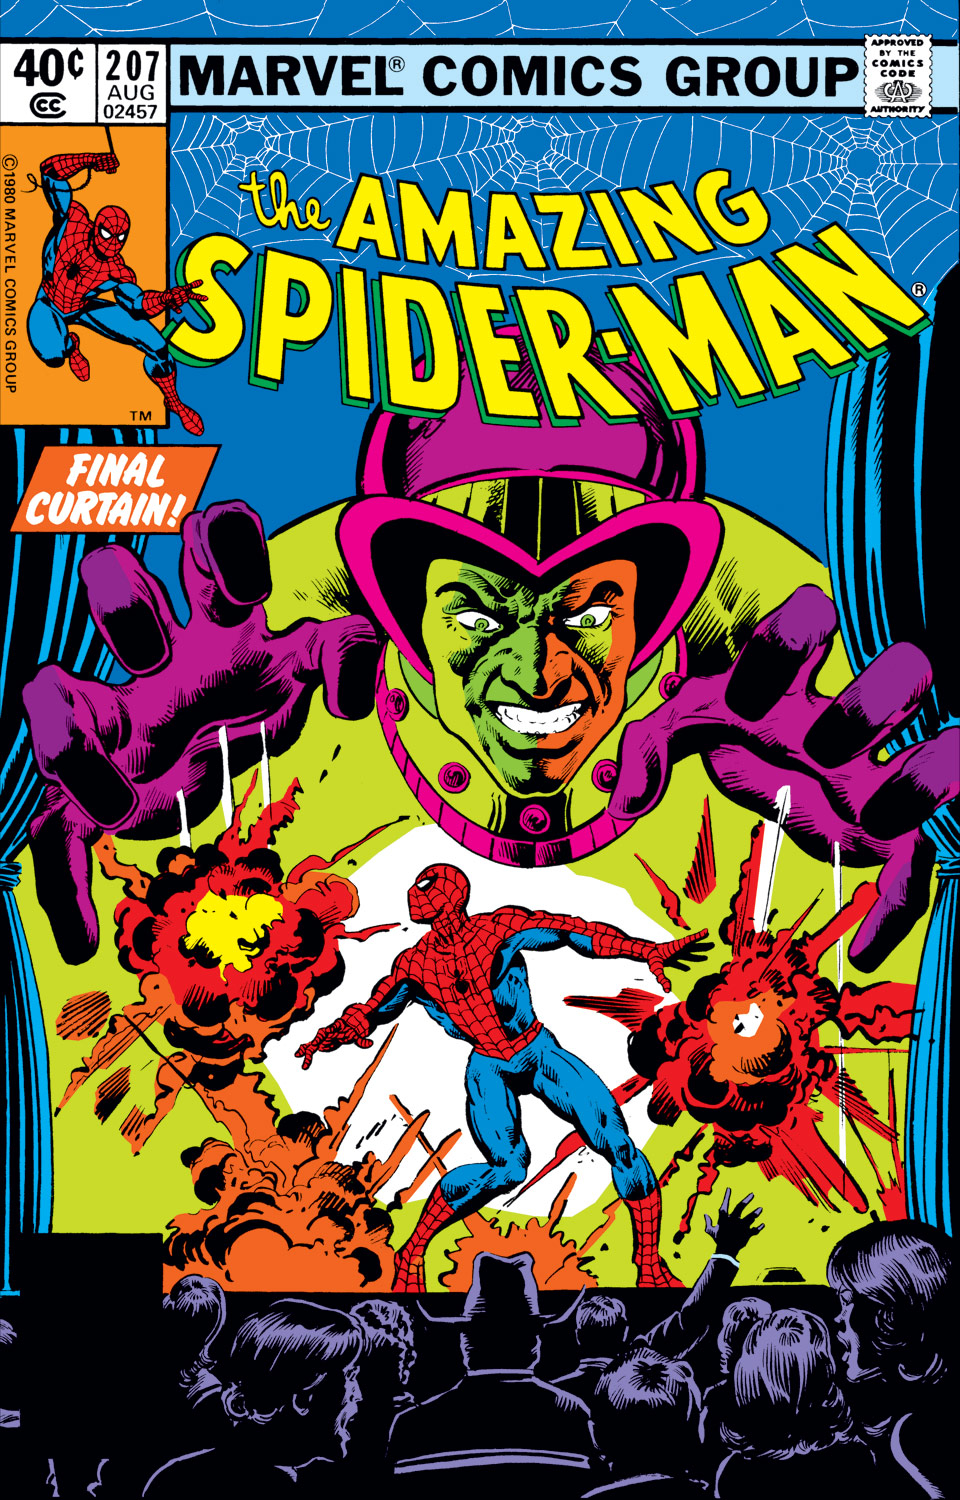 Amazing Spider-Man (1963) #207, cover penciled by Mike Nasser & inked by Al Milgrom.